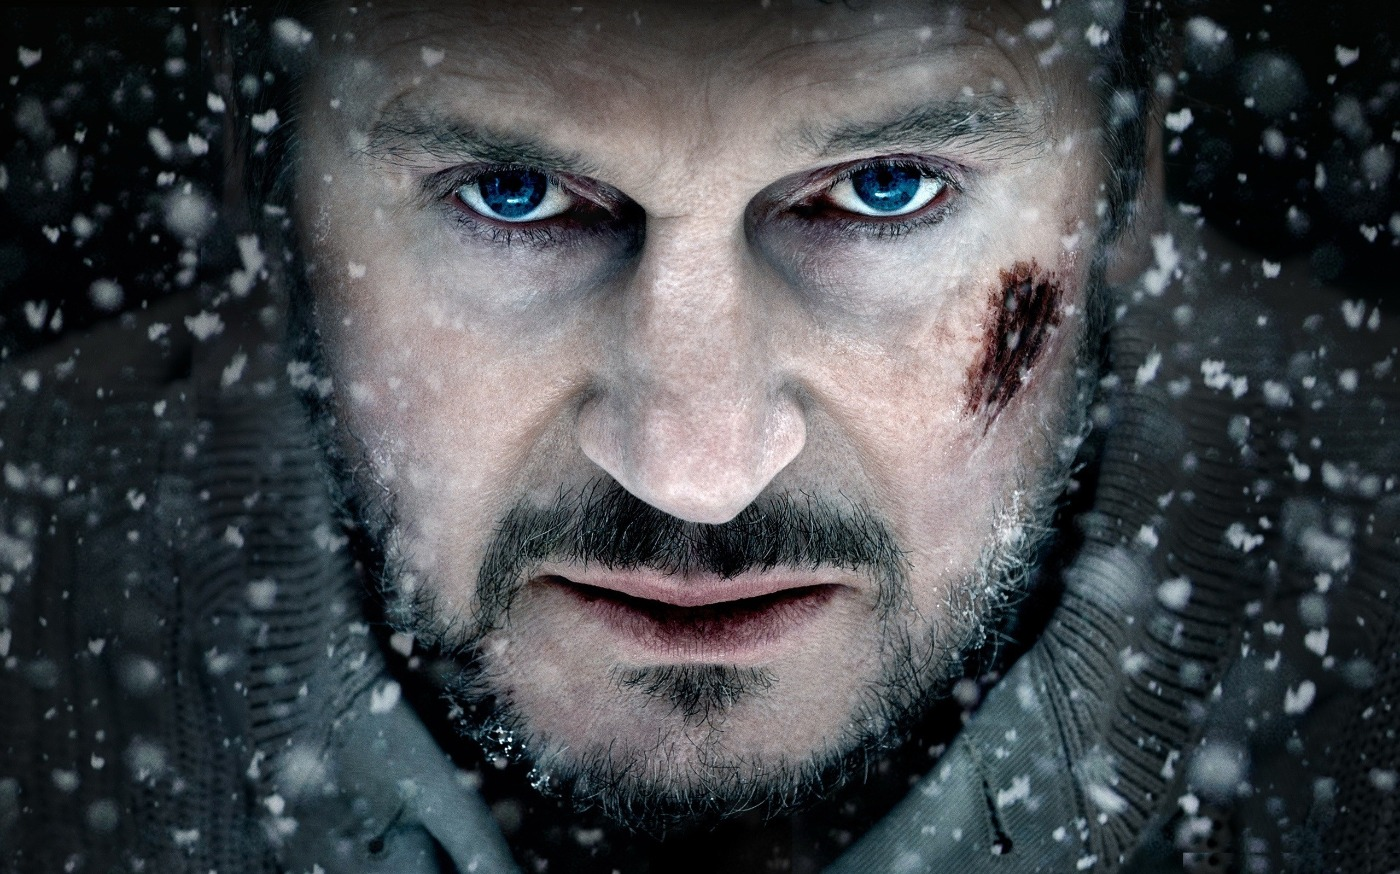 Liam Neeson in The Grey, staring solemnly.